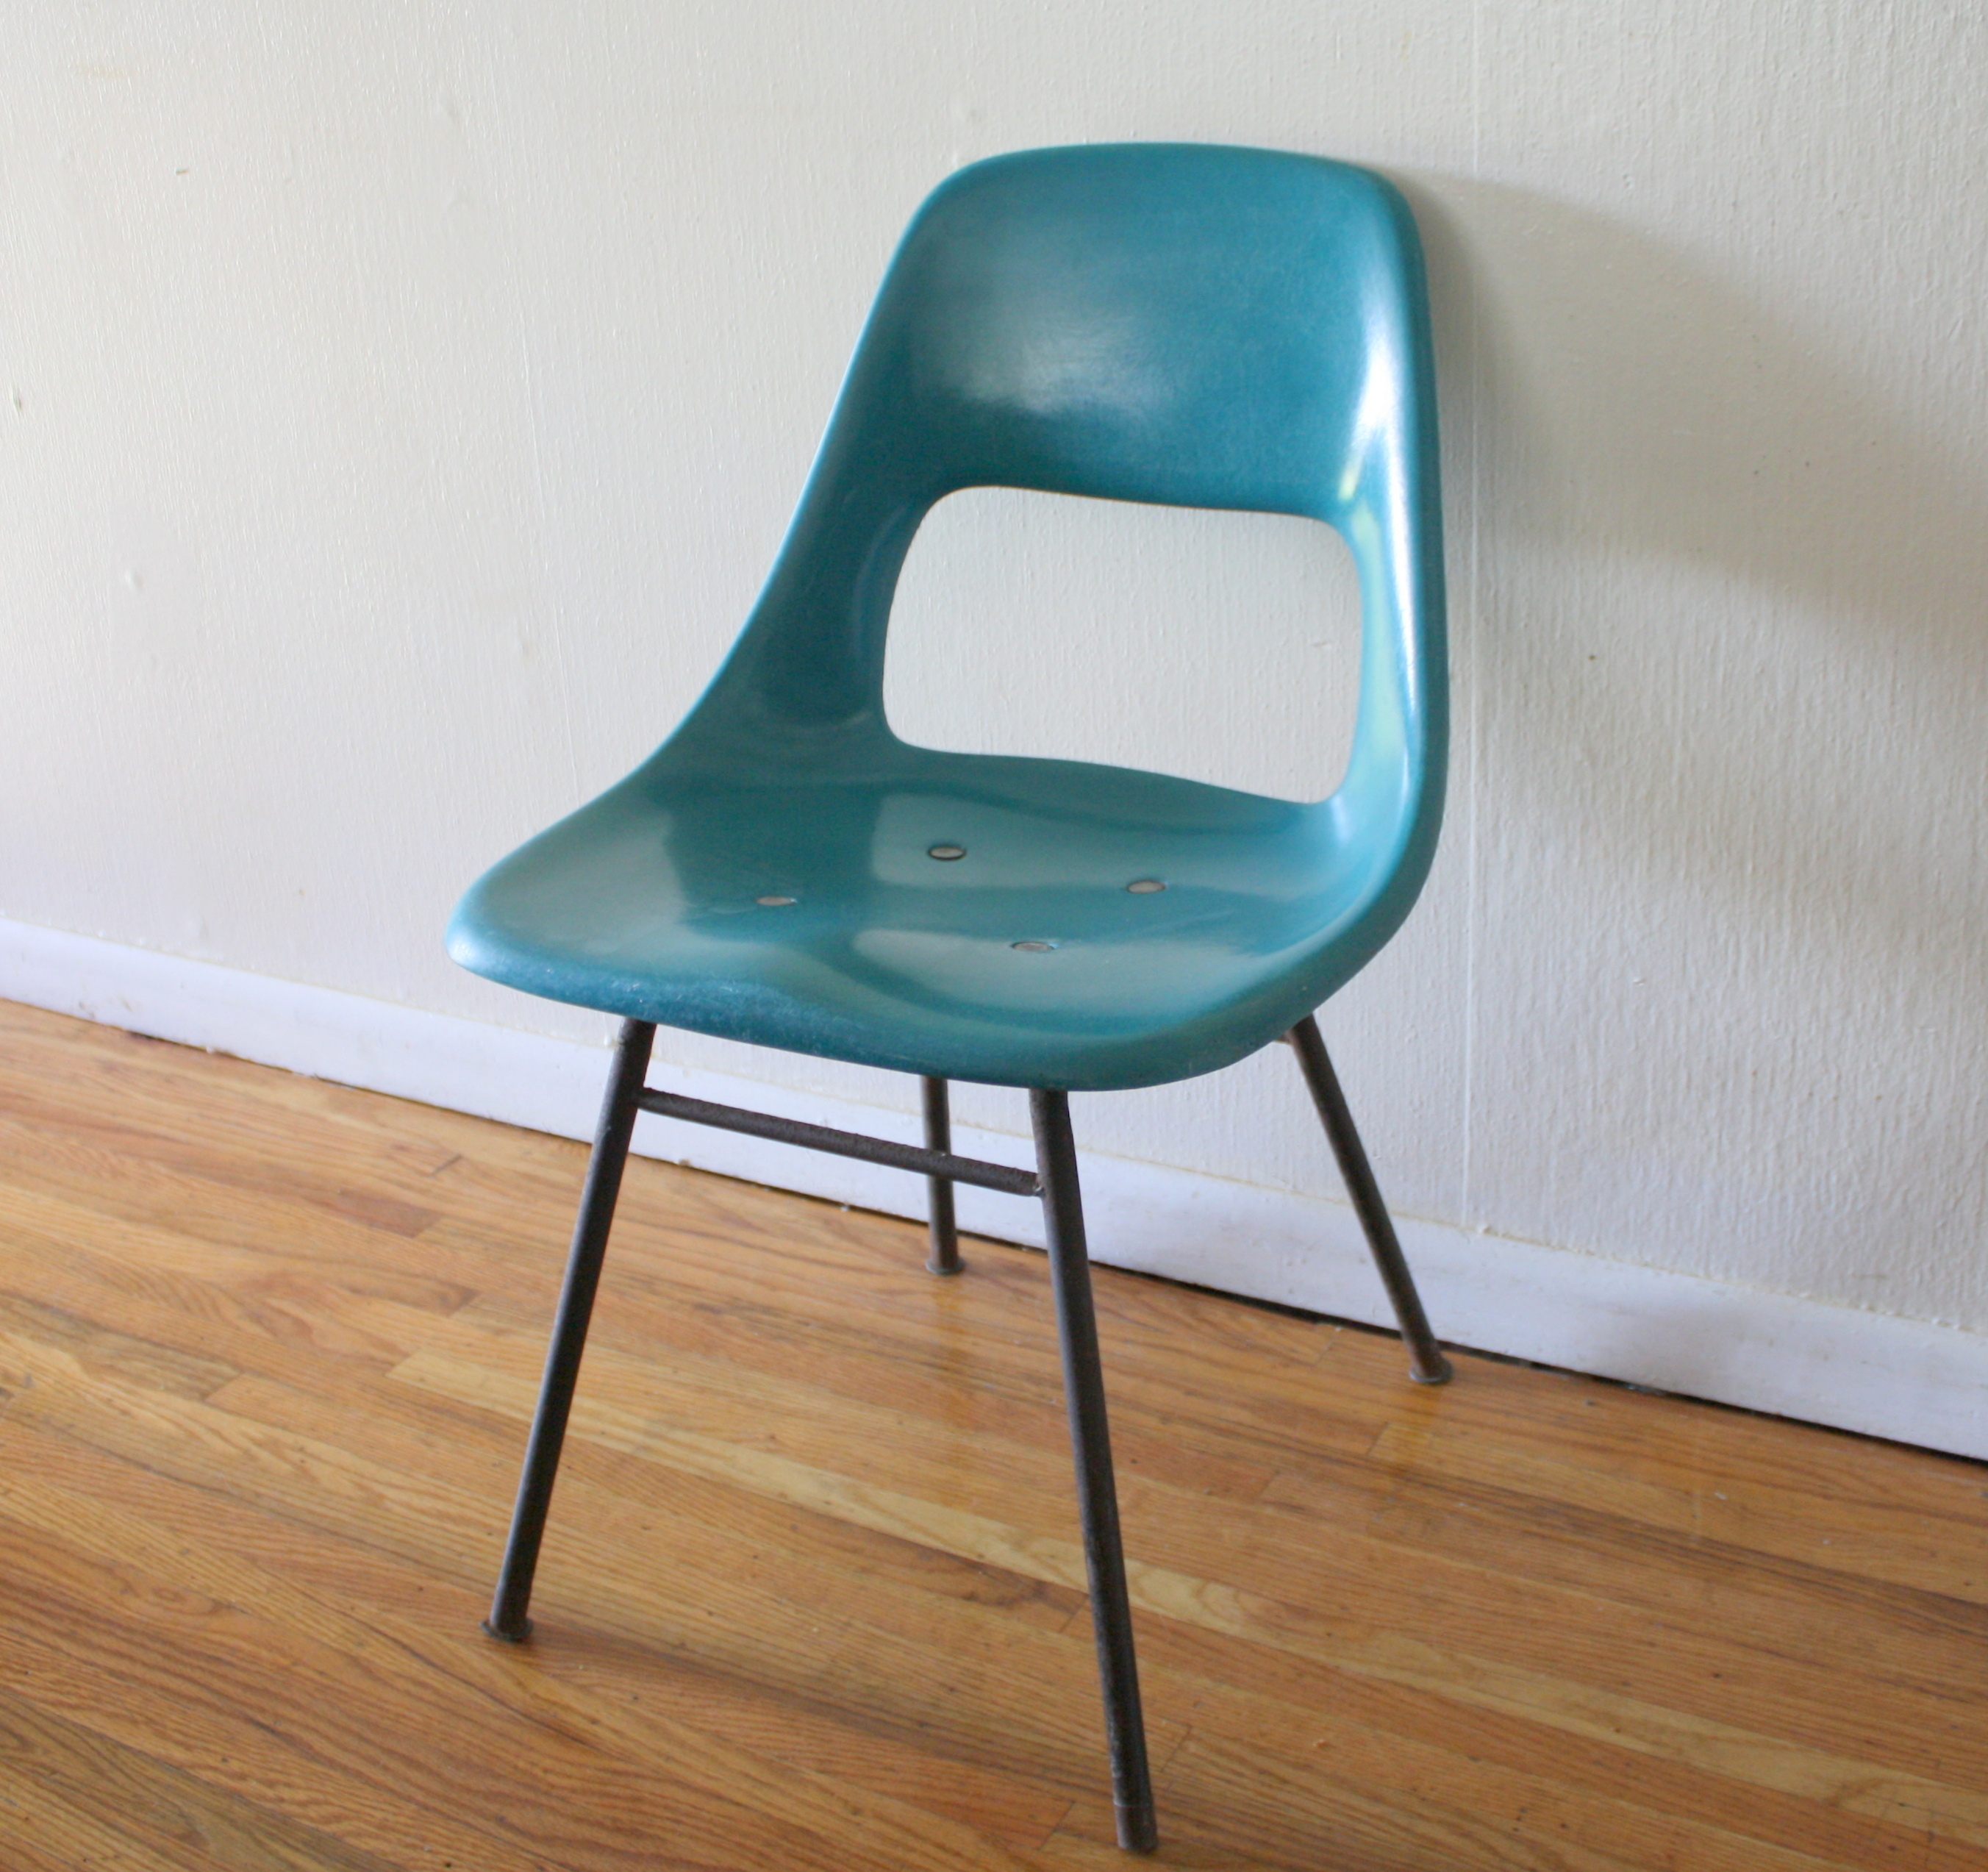 Charmant Blue Fiberglass Chair 2